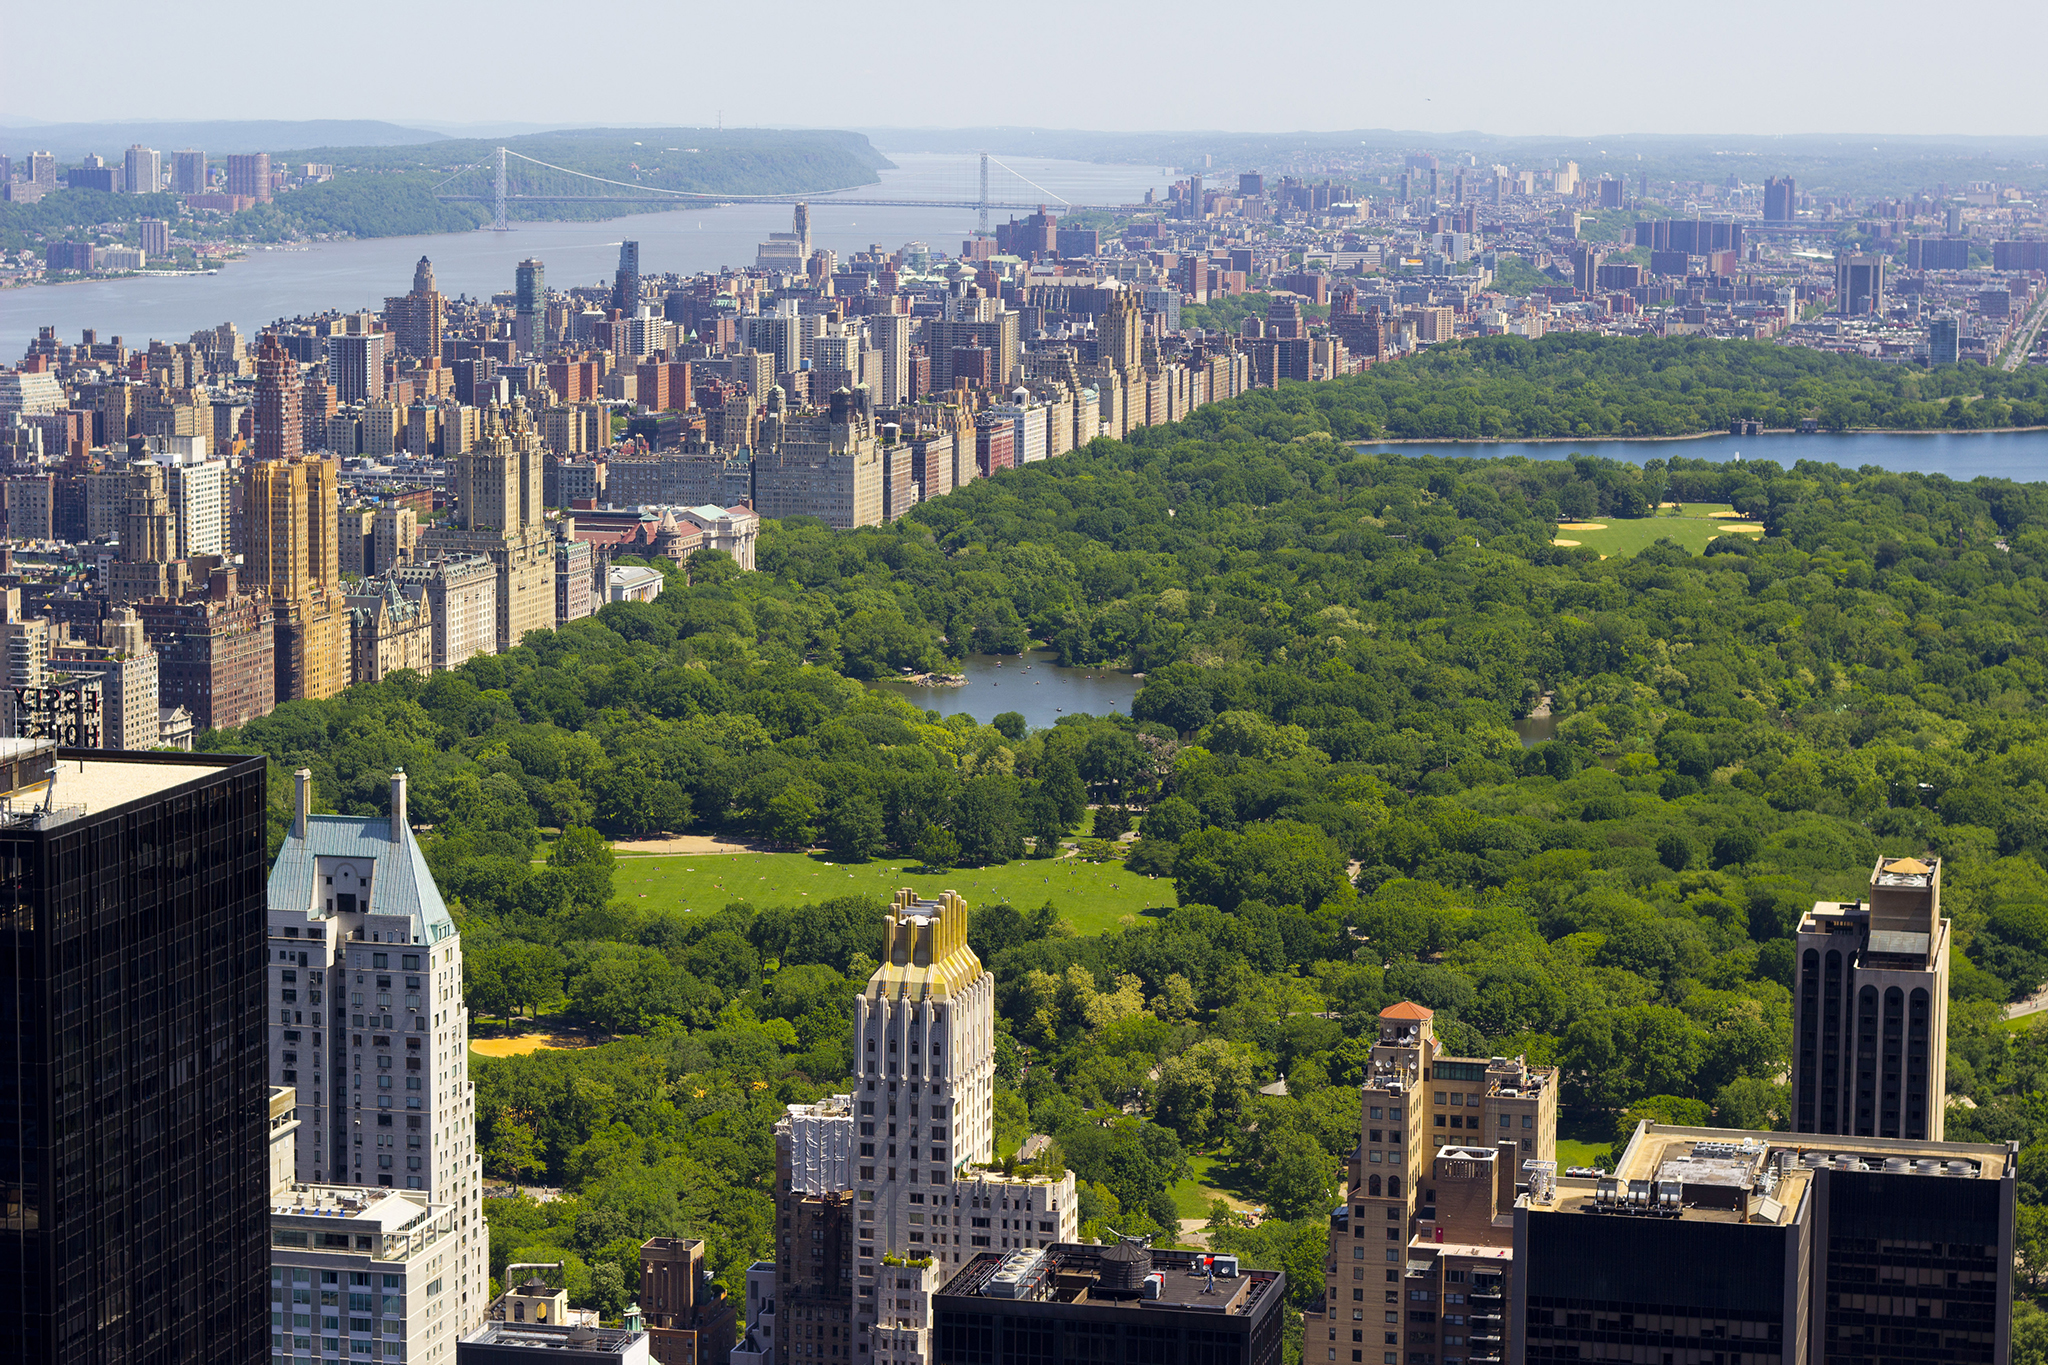 Check out the best things to do in Central Park